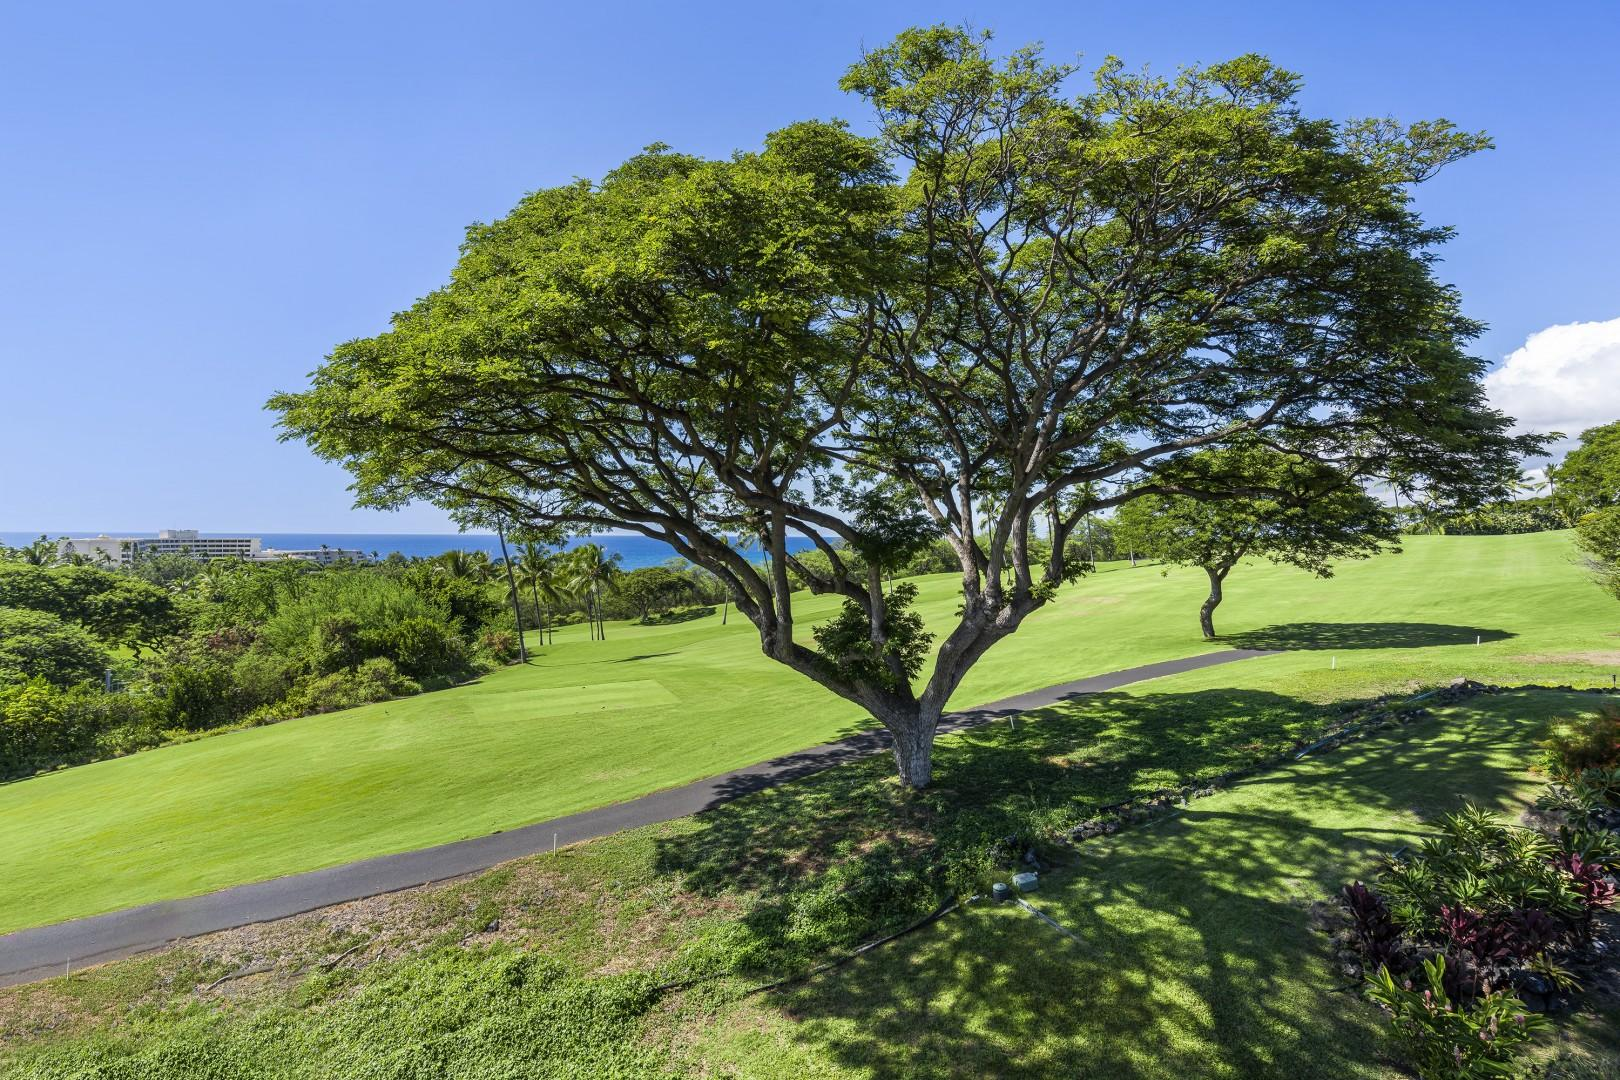 Look over the Kona Country Club golf course!